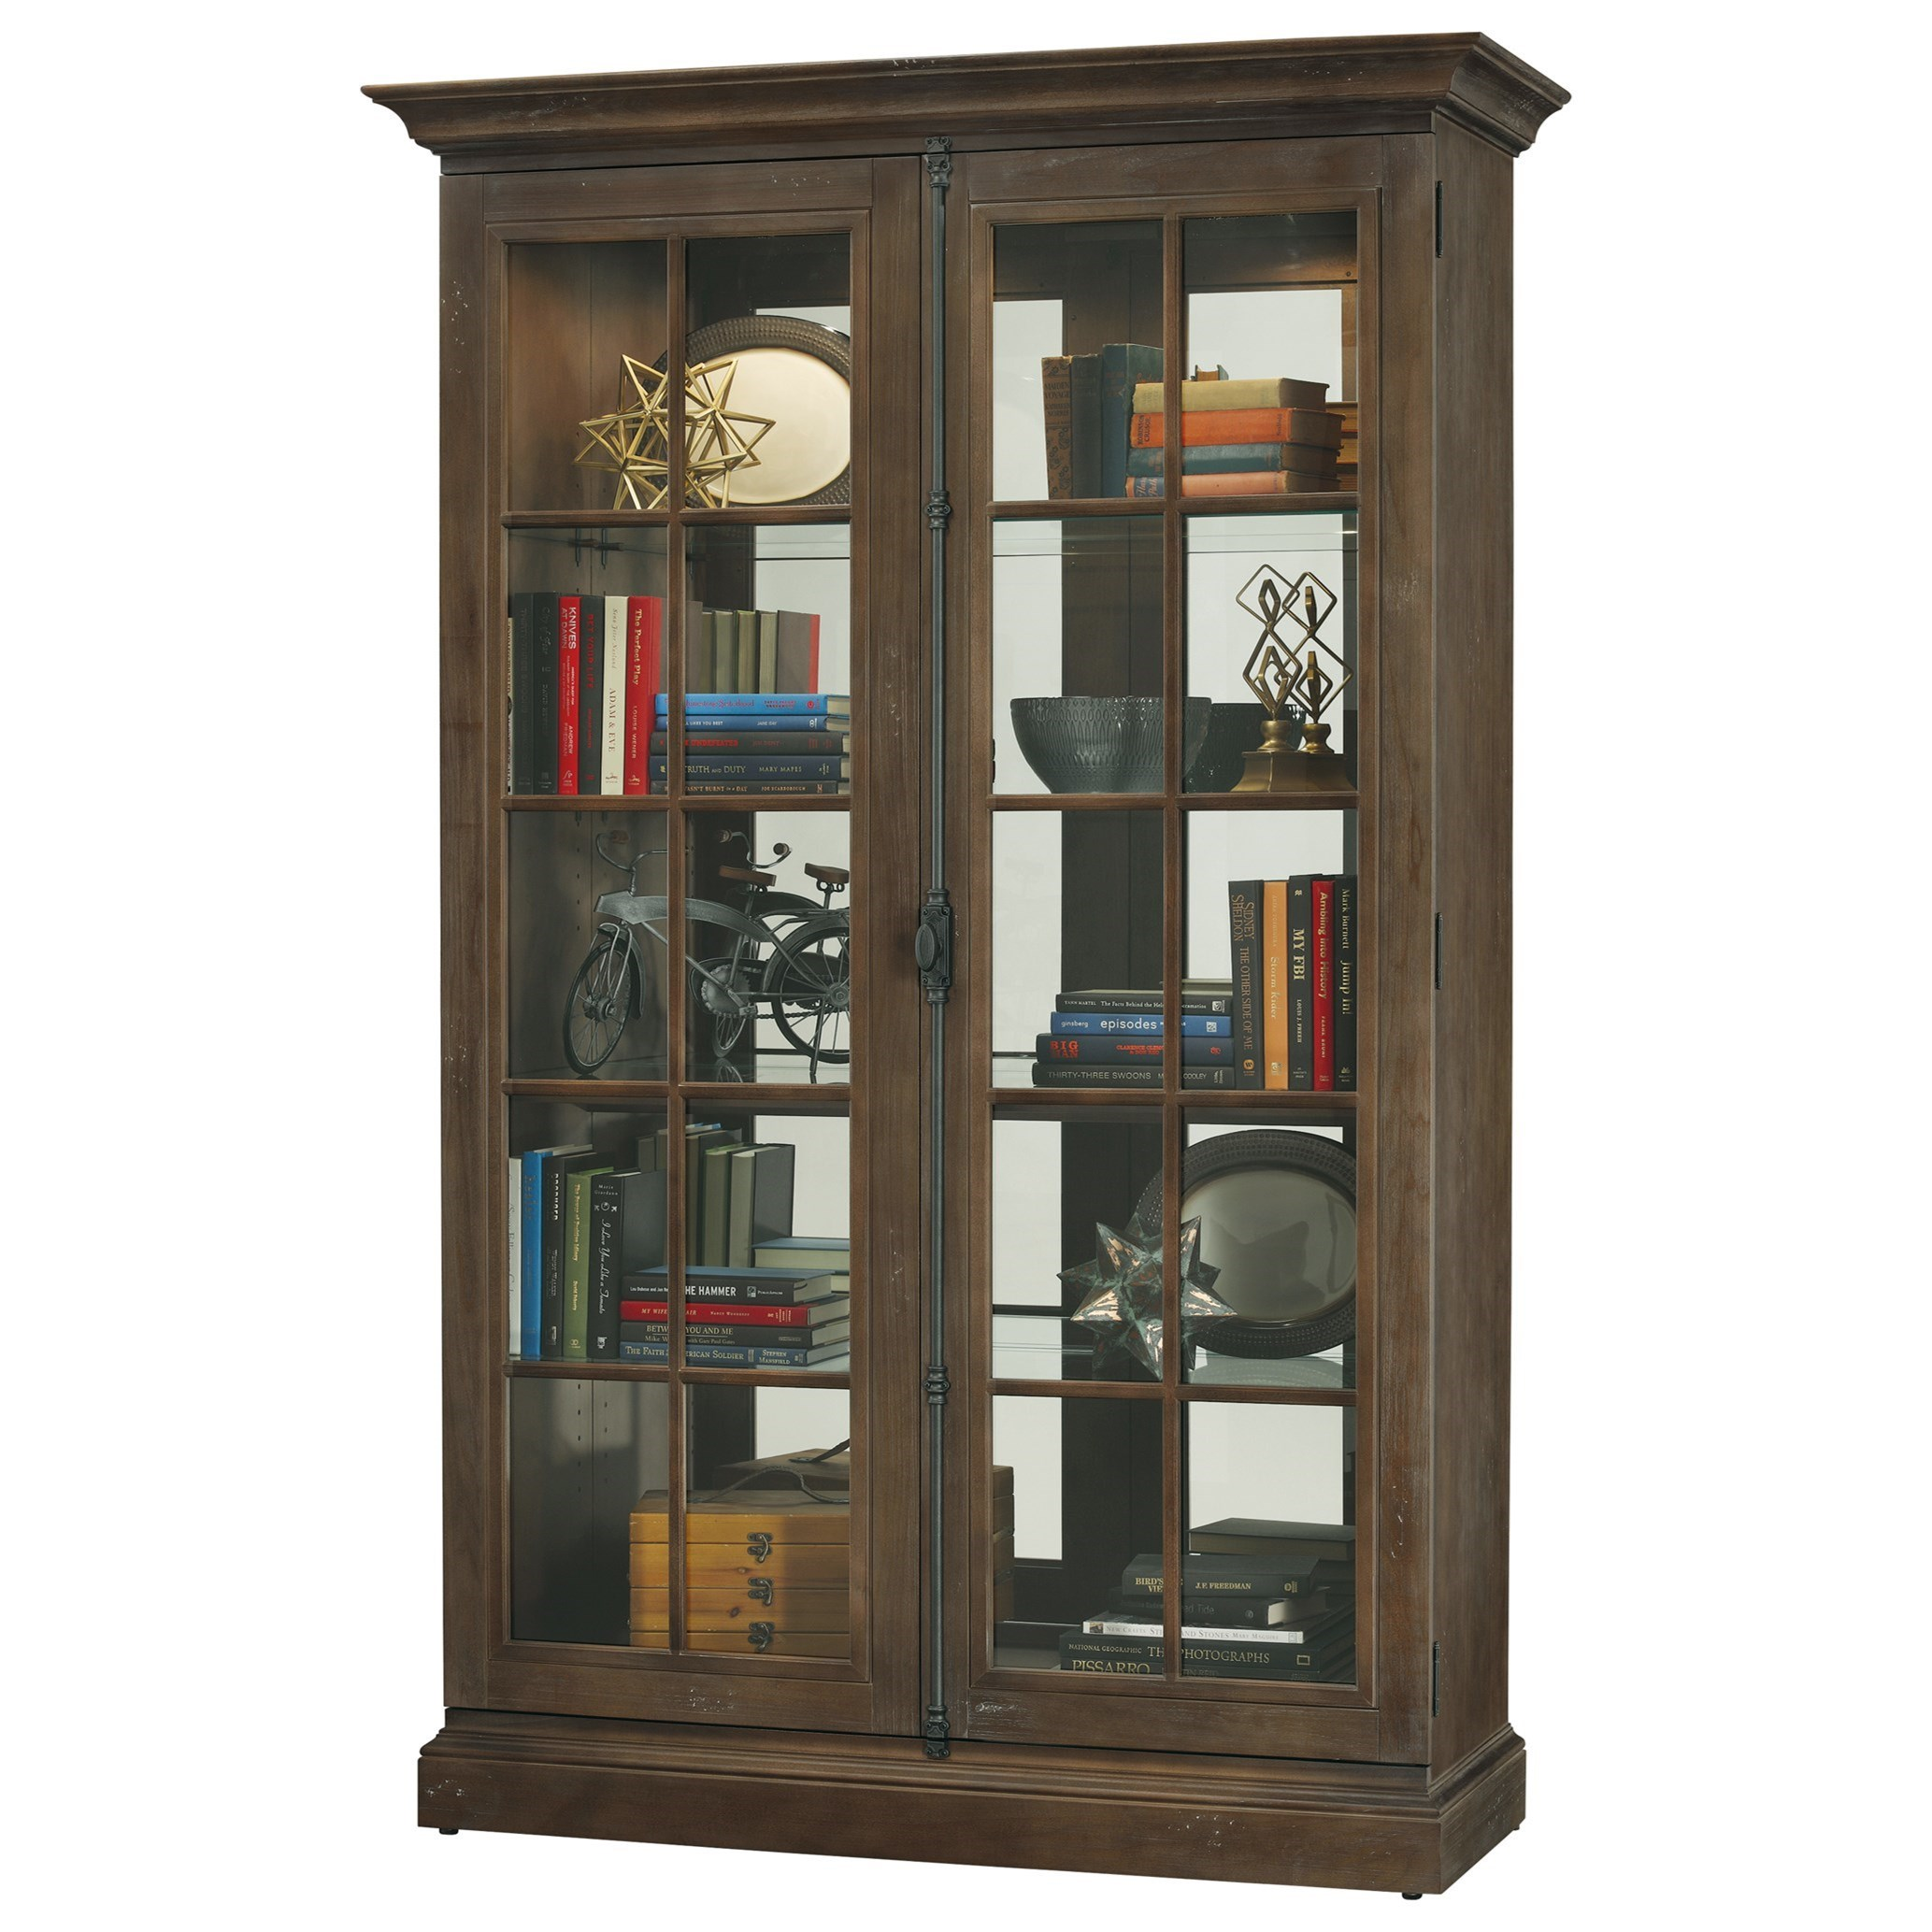 Howard Miller Cabinets Clawson Door abinet - Item Number: 670-020